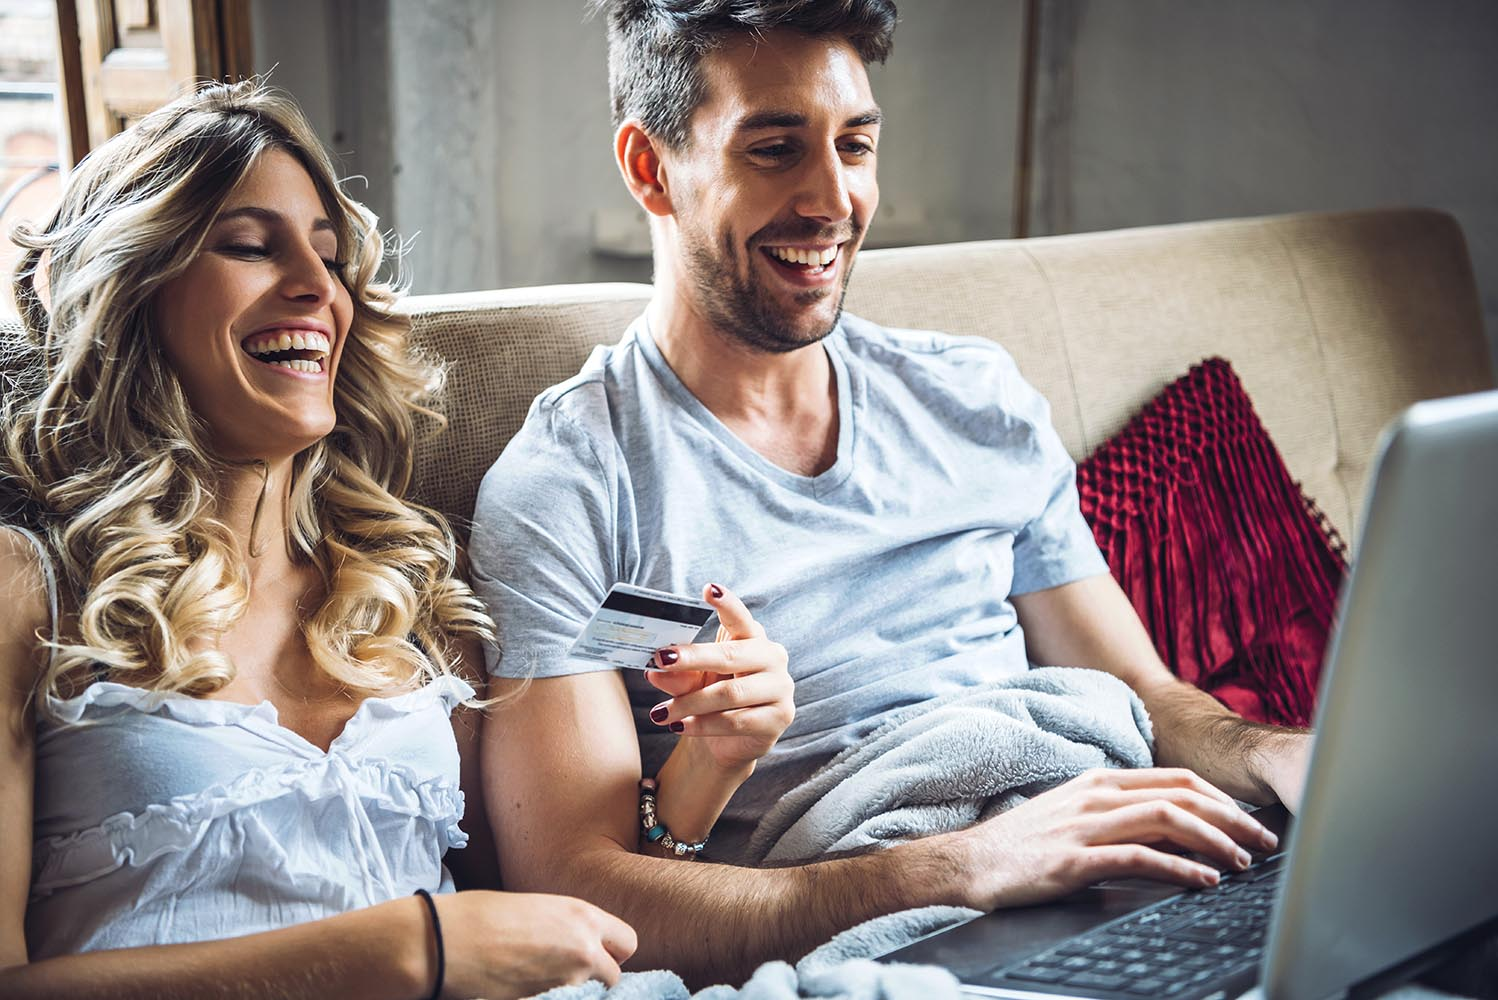 Laughing couple browsing laptop